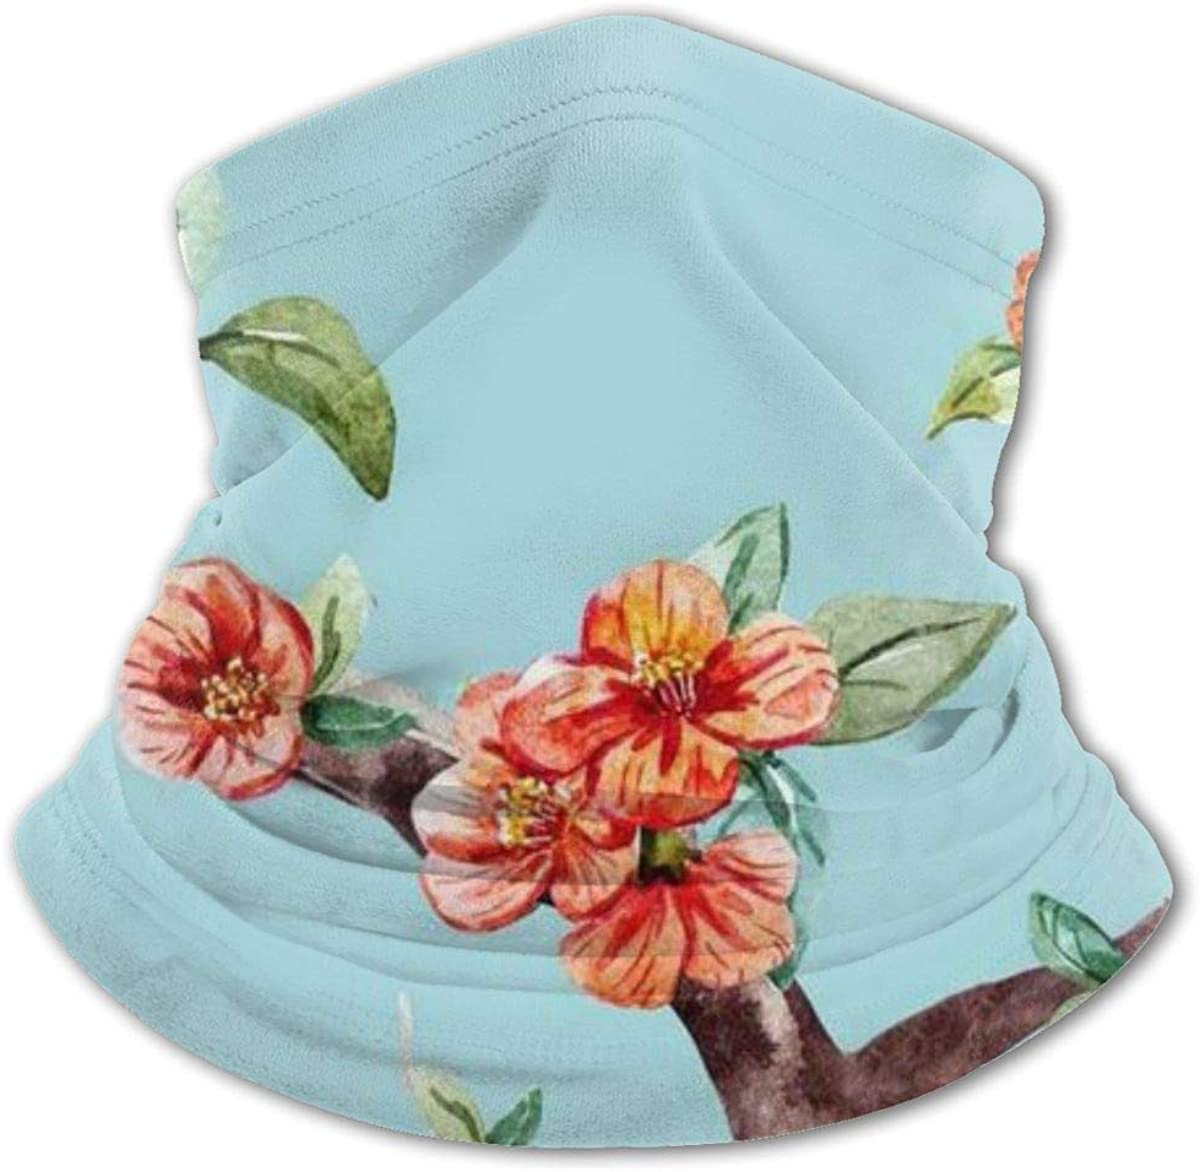 Flower Art Light Blue Headwear For Girls And Boys, Head Wrap, Neck Gaiter, Headband, Tenn Fishing Mask, Magic Scarf, Tube Mask, Face Bandana Mask For Camping Running Cycling